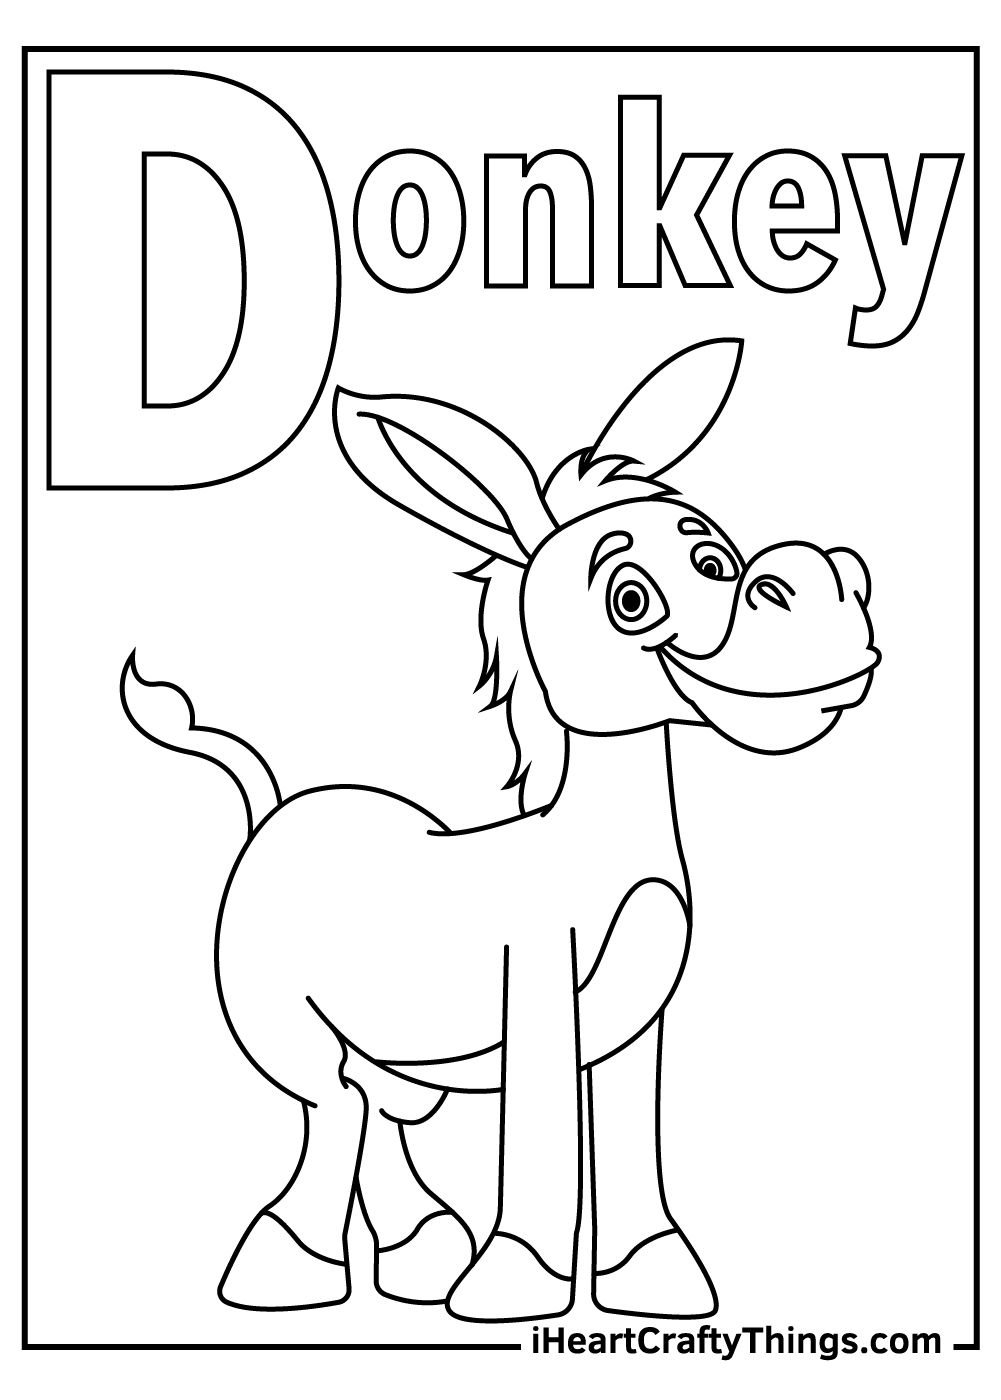 d is for donkey coloring pages free download